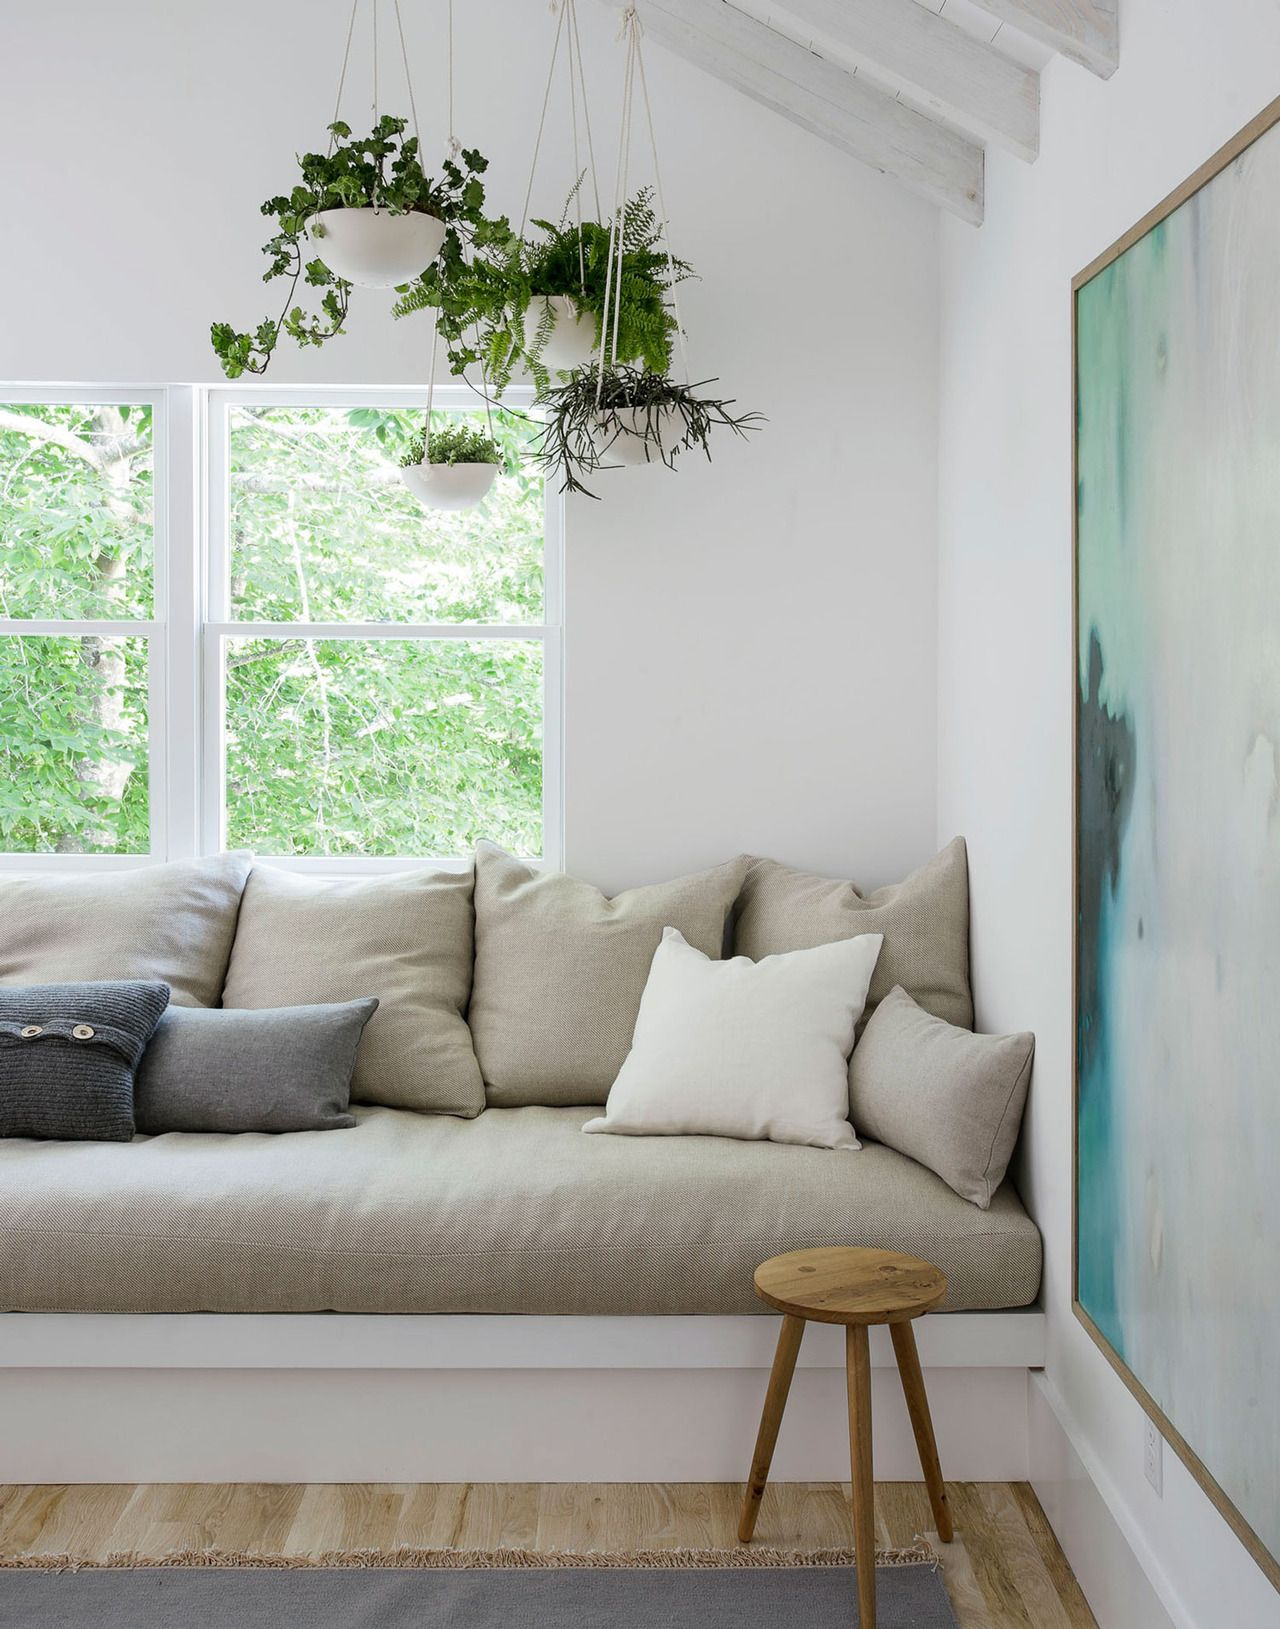 Image Result For Built In Sofa Built In Sofa Home Interior Design Beach House Interior